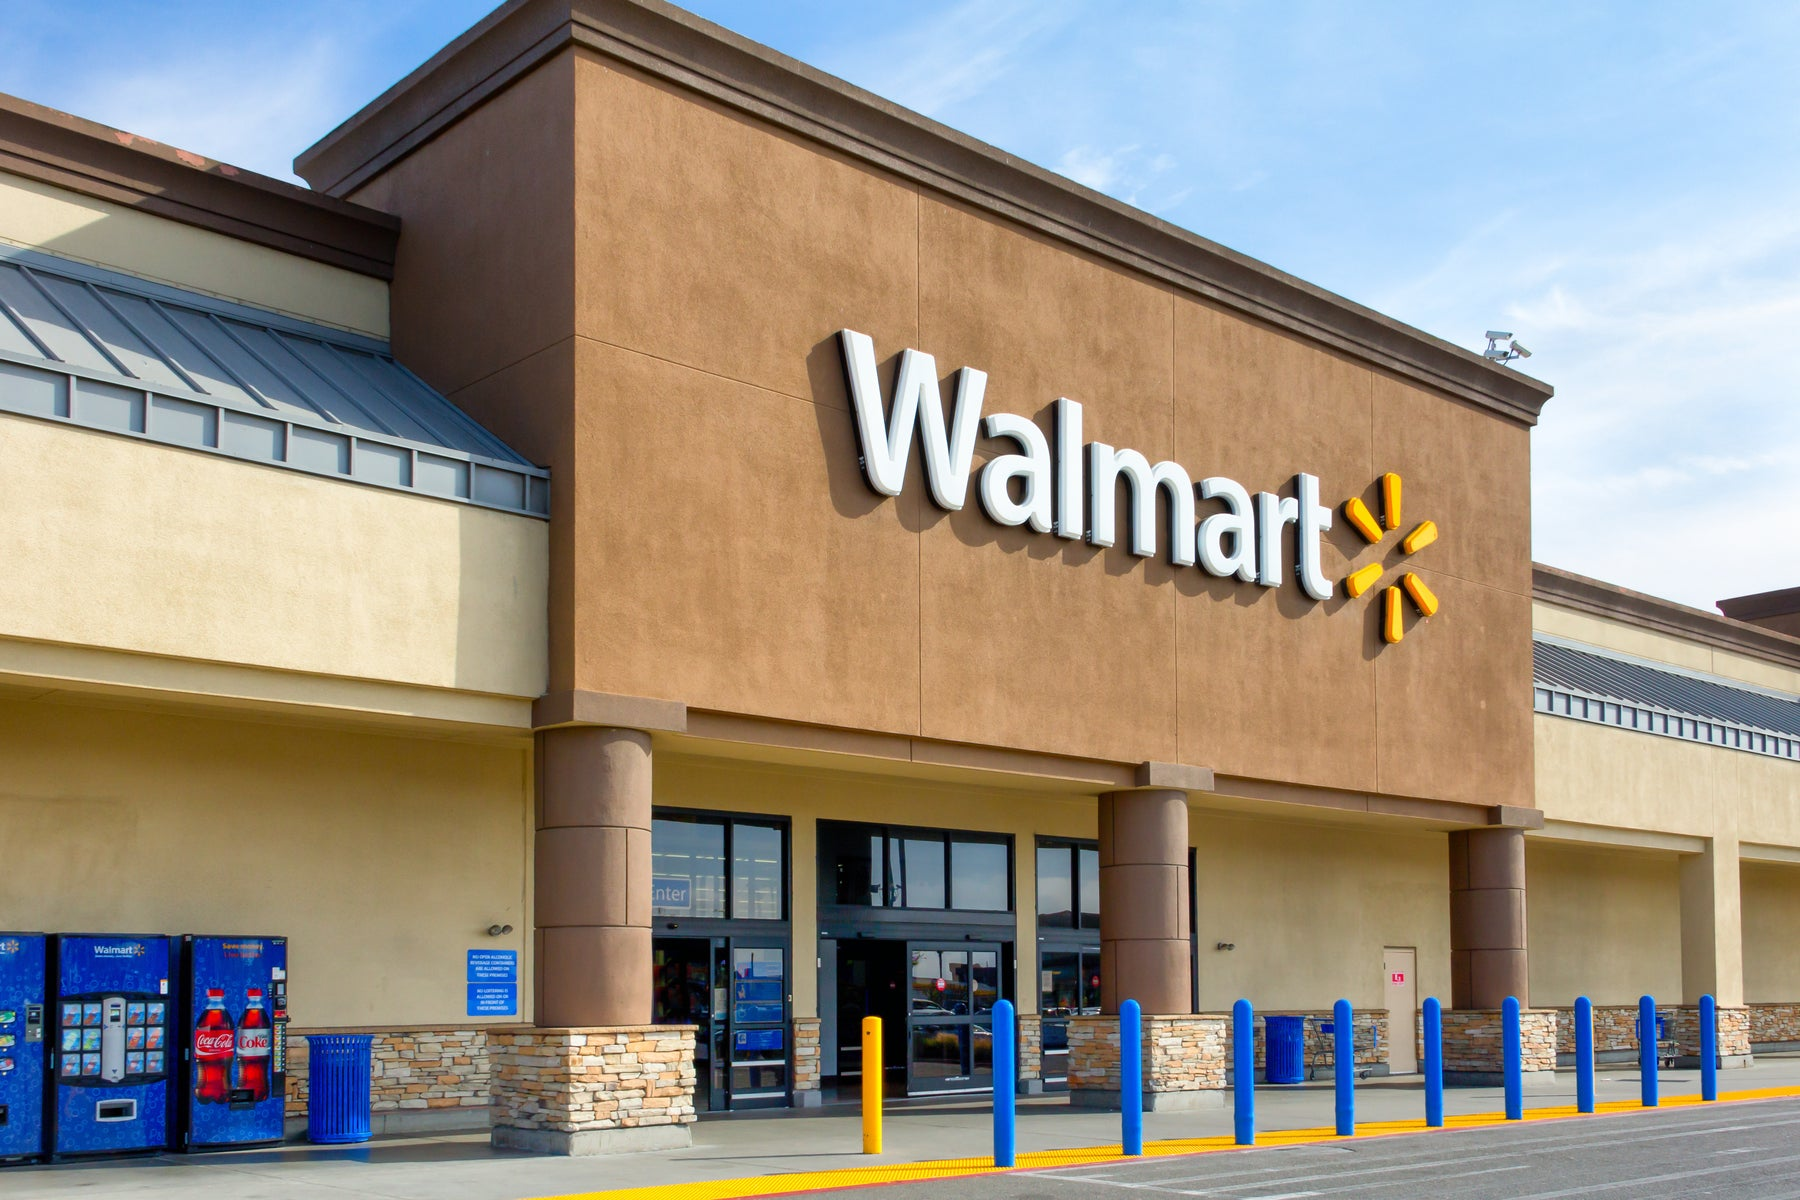 Amazon Vs. Walmart - Are Things Changing for Sellers in eCommerce?